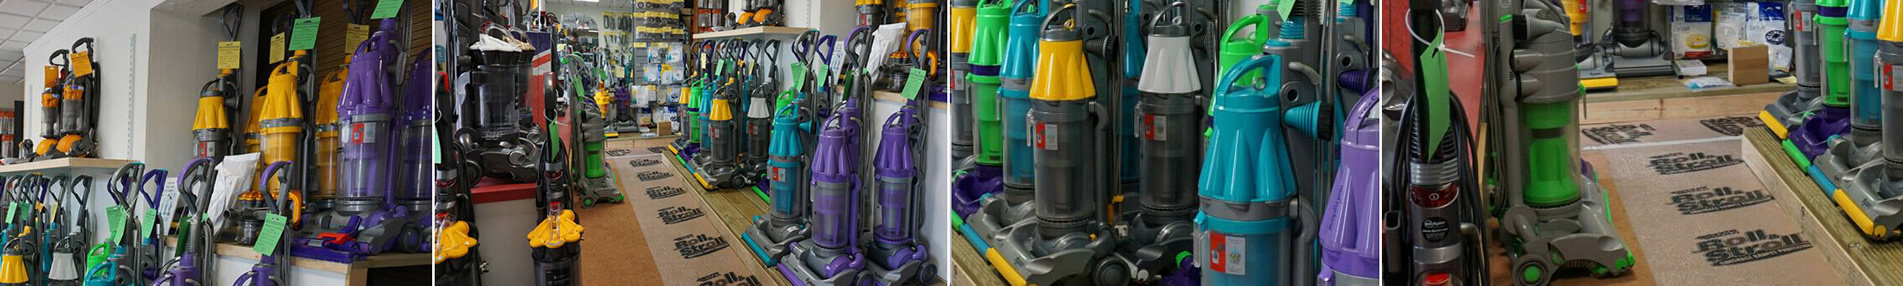 Dyson Service and Repair